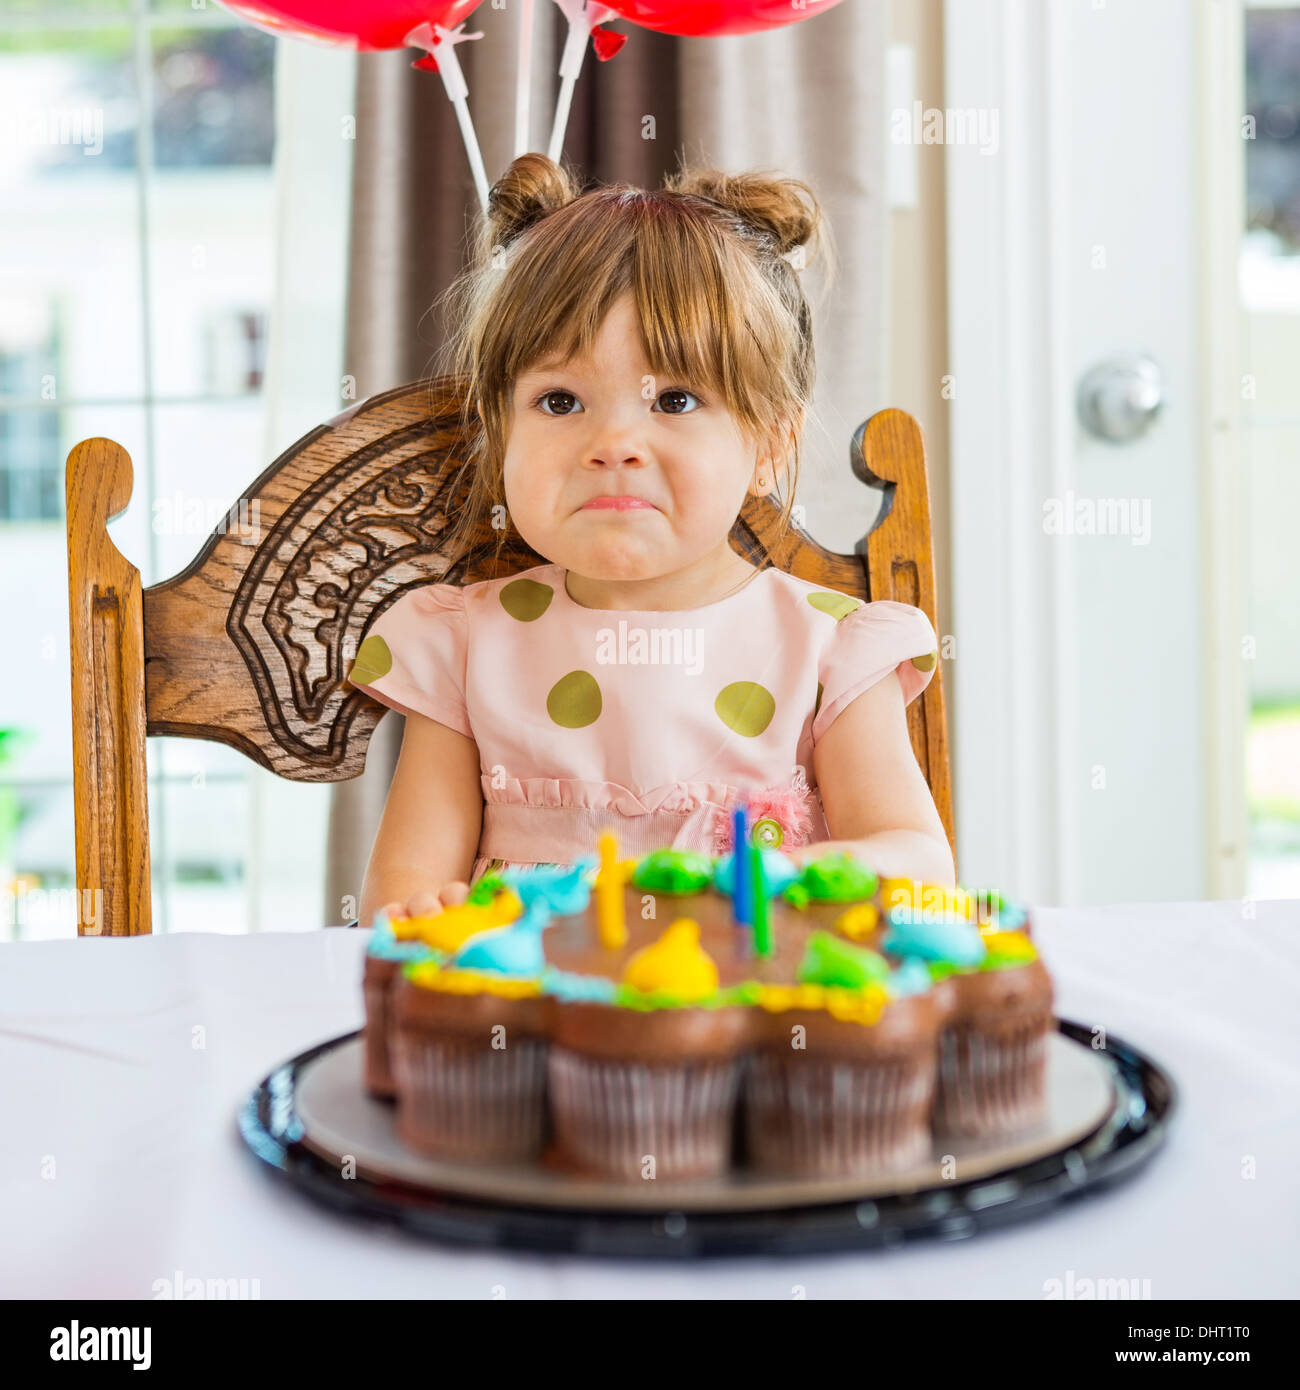 Birthday Girl Sitting In Front Of Cake - Stock Image